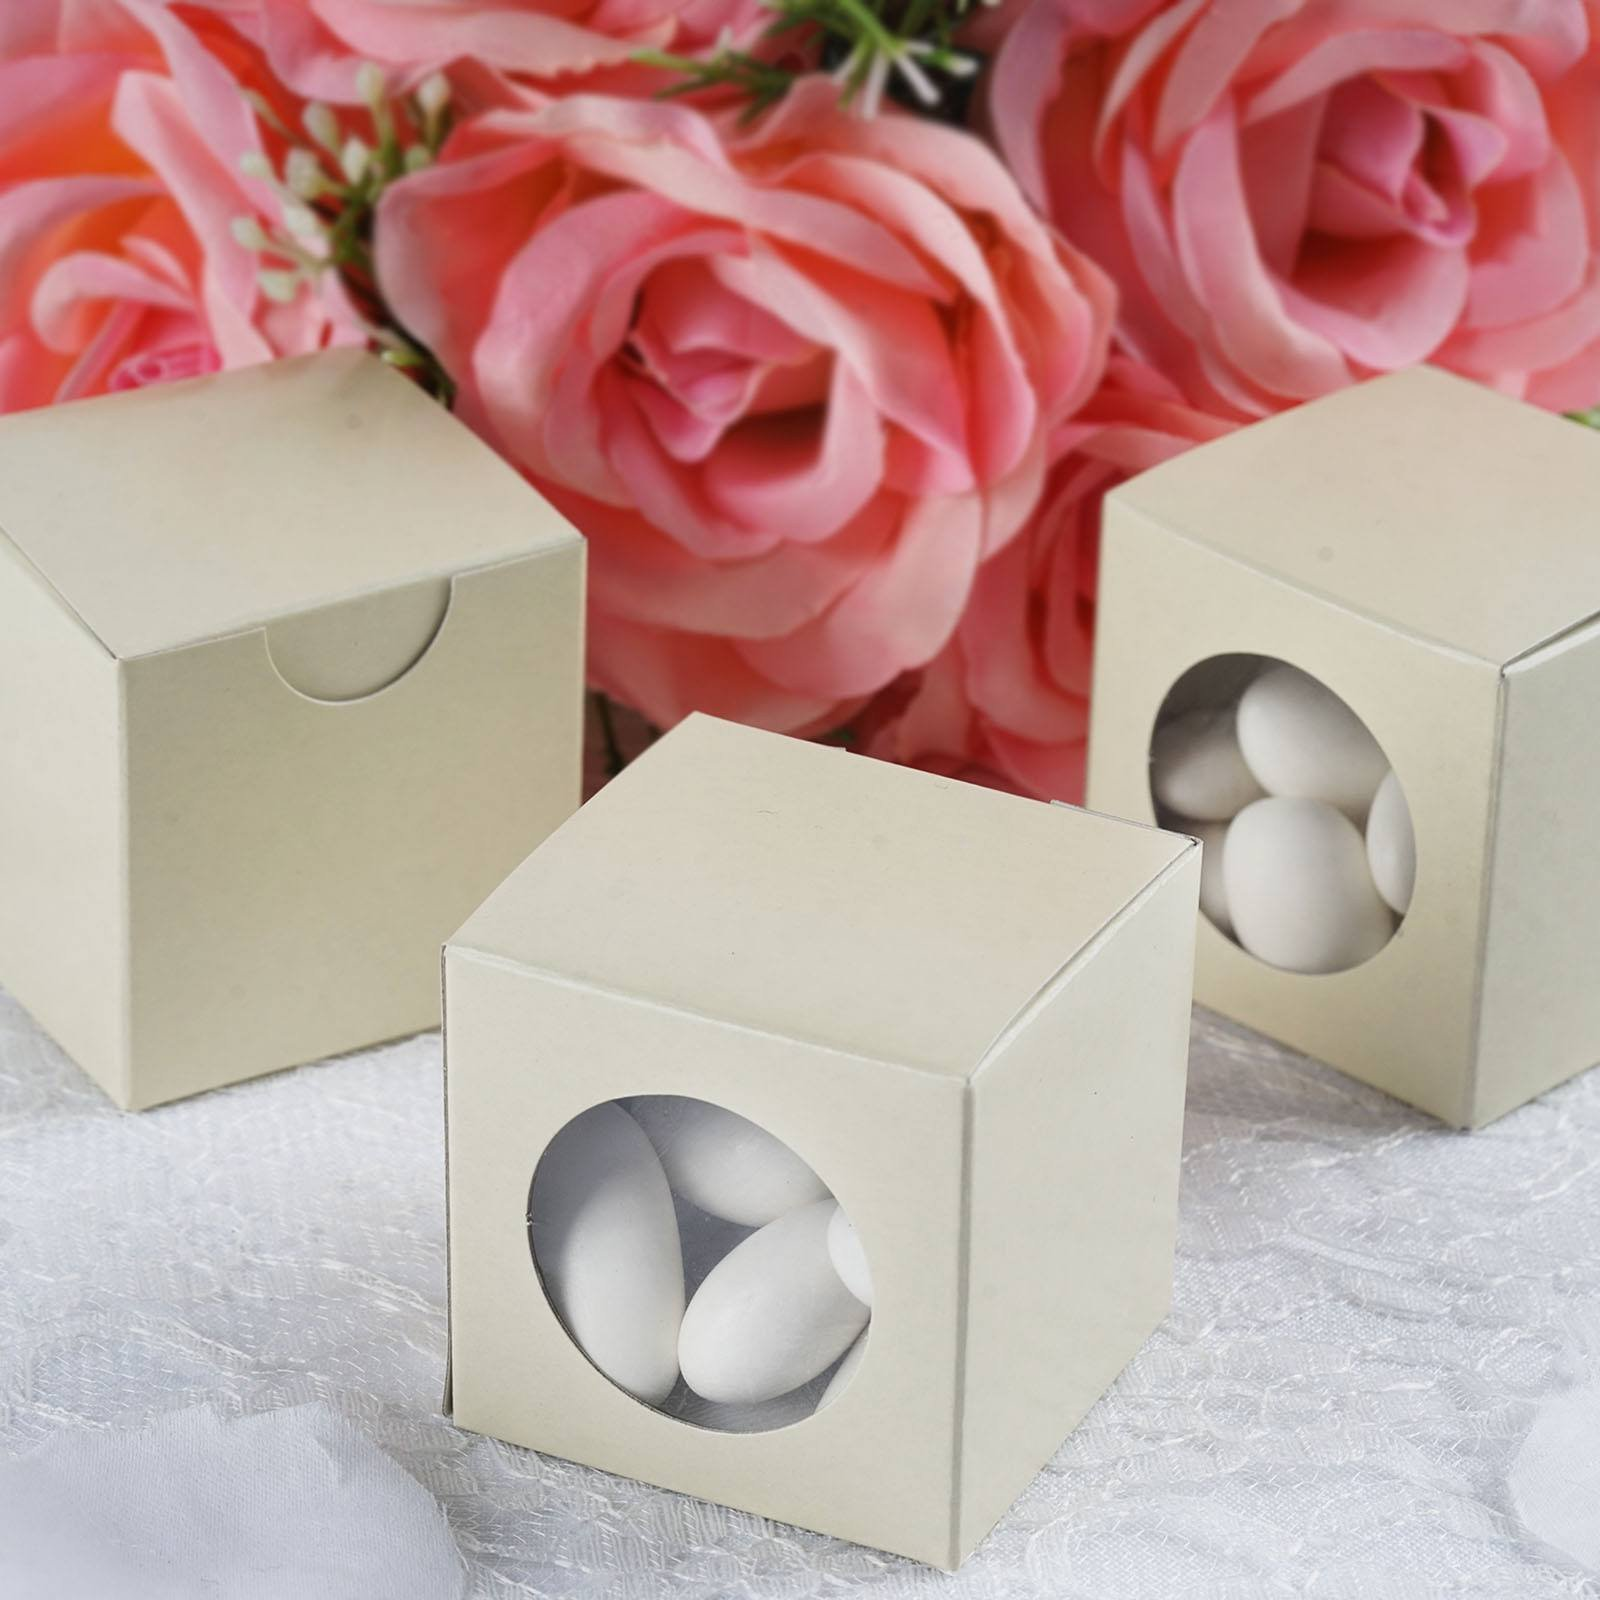 Efavormart 2x2  Ballotin Box for Candy Treat Gift Wrap Box Party Favor Boxes for Bridal Shower Anniverary Wedding Party -100 Boxes